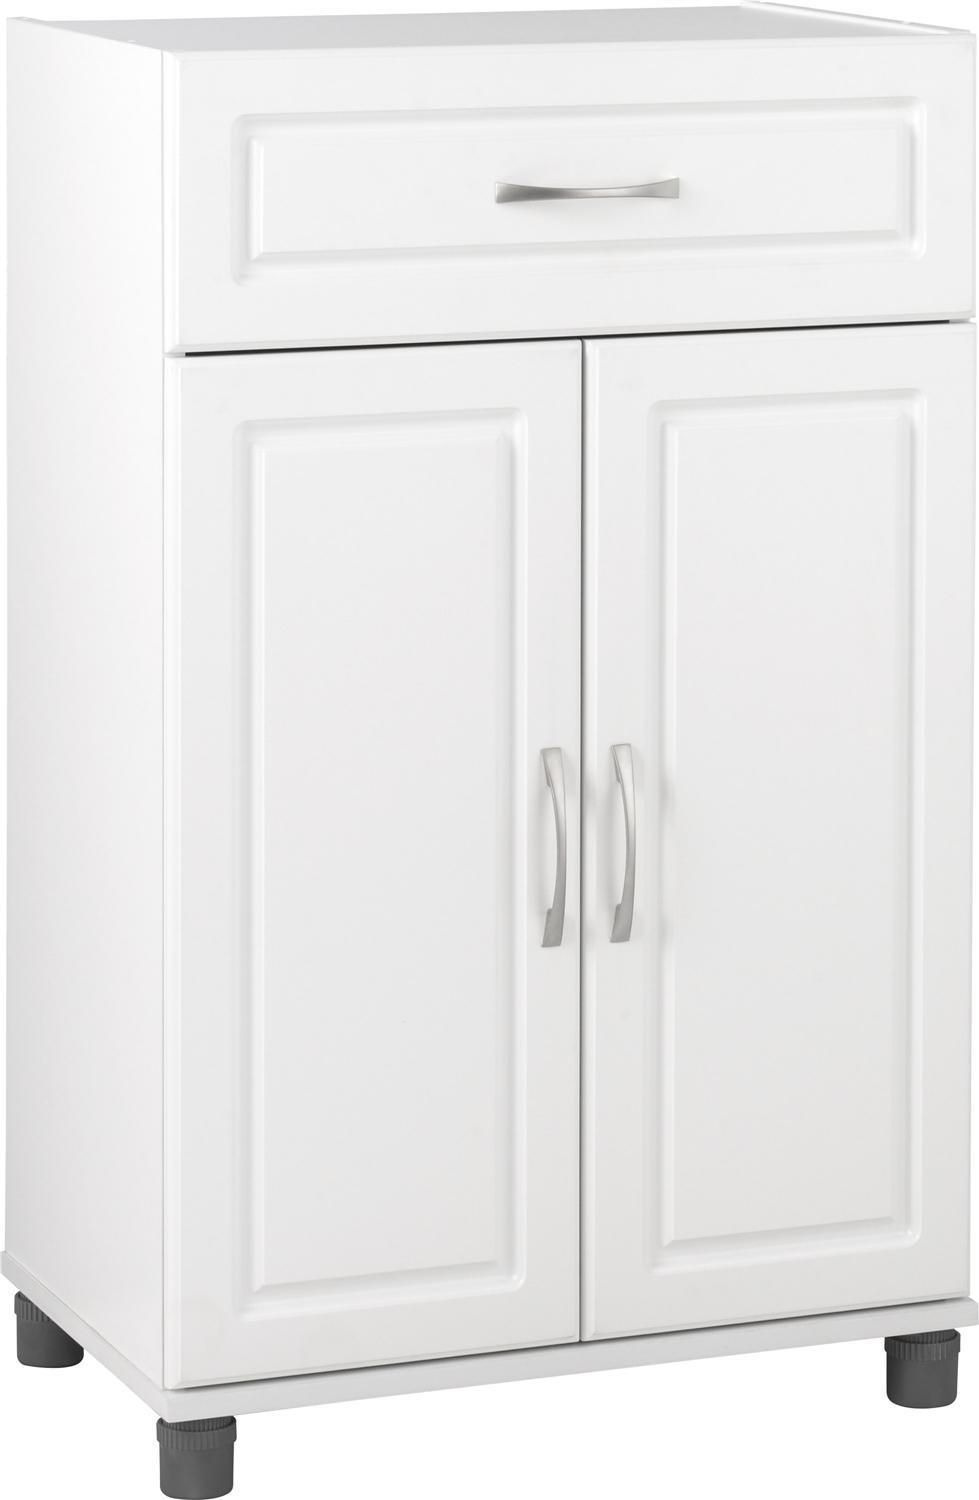 Walmart Storage Cabinets with Doors Inspirational Dorel E Drawer and 2 Cabinet